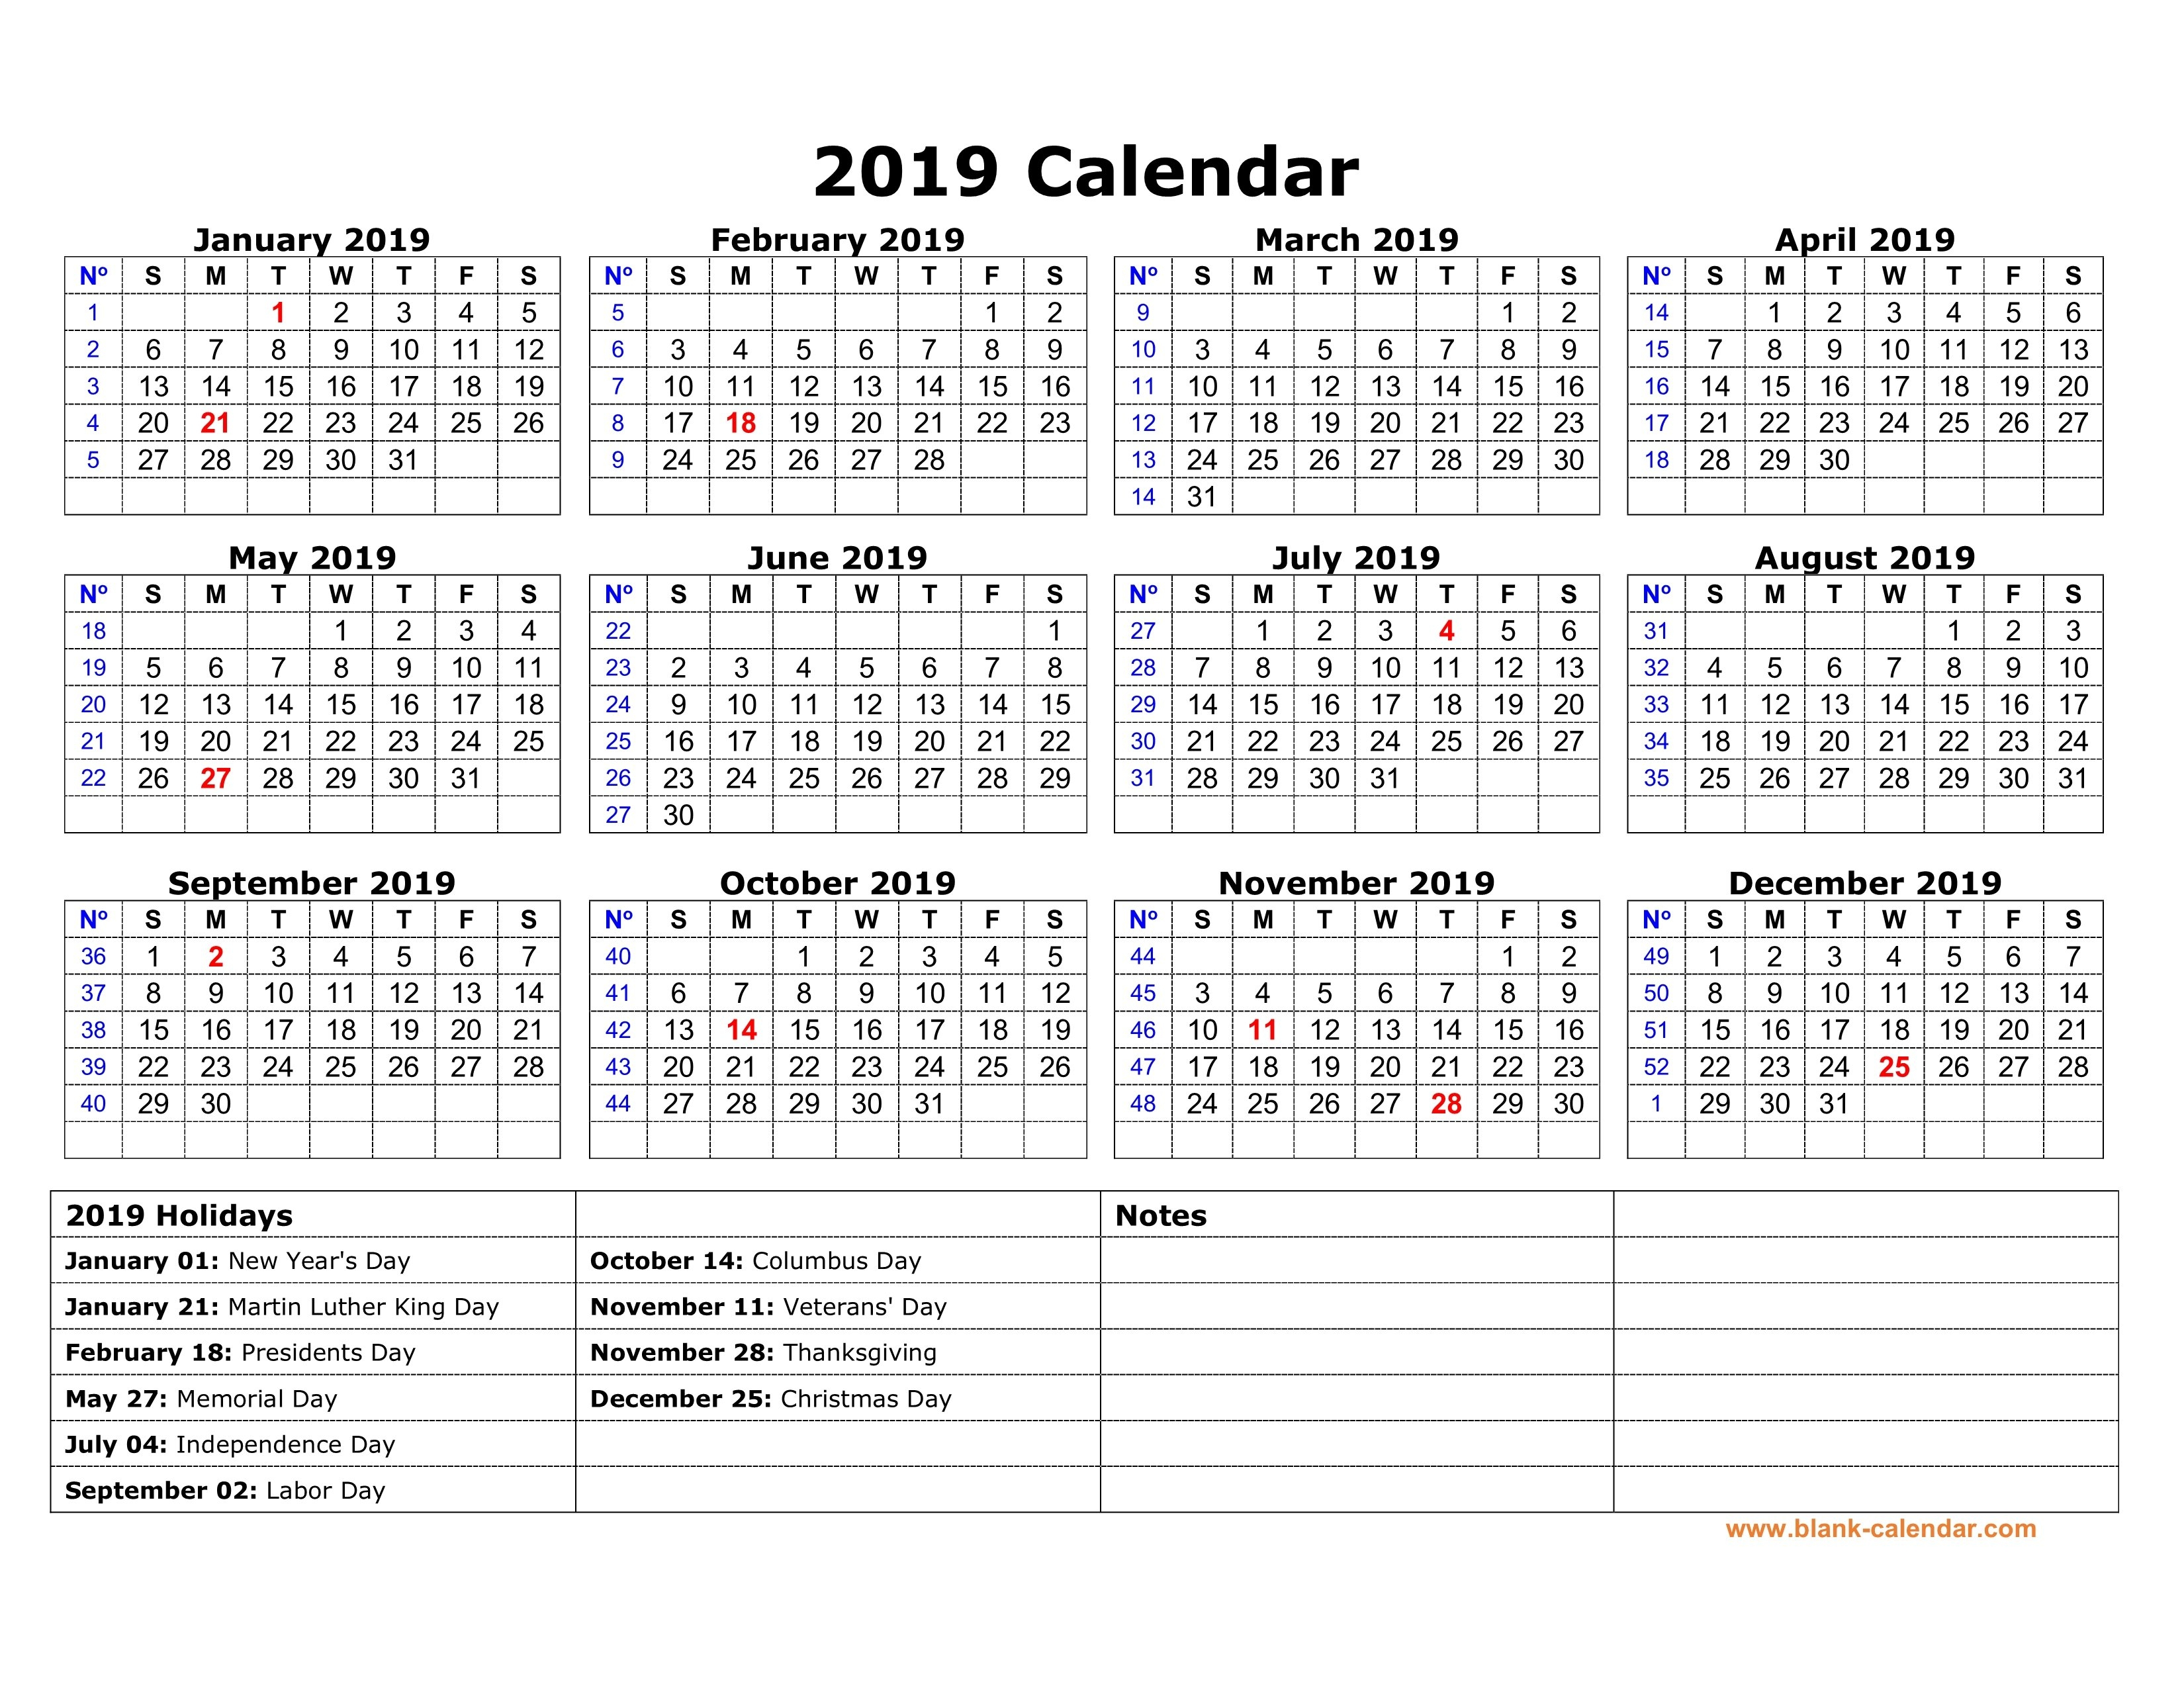 Free Download Printable Calendar 2019 With Us Federal Holidays, One Calendar 2019 Of Holidays